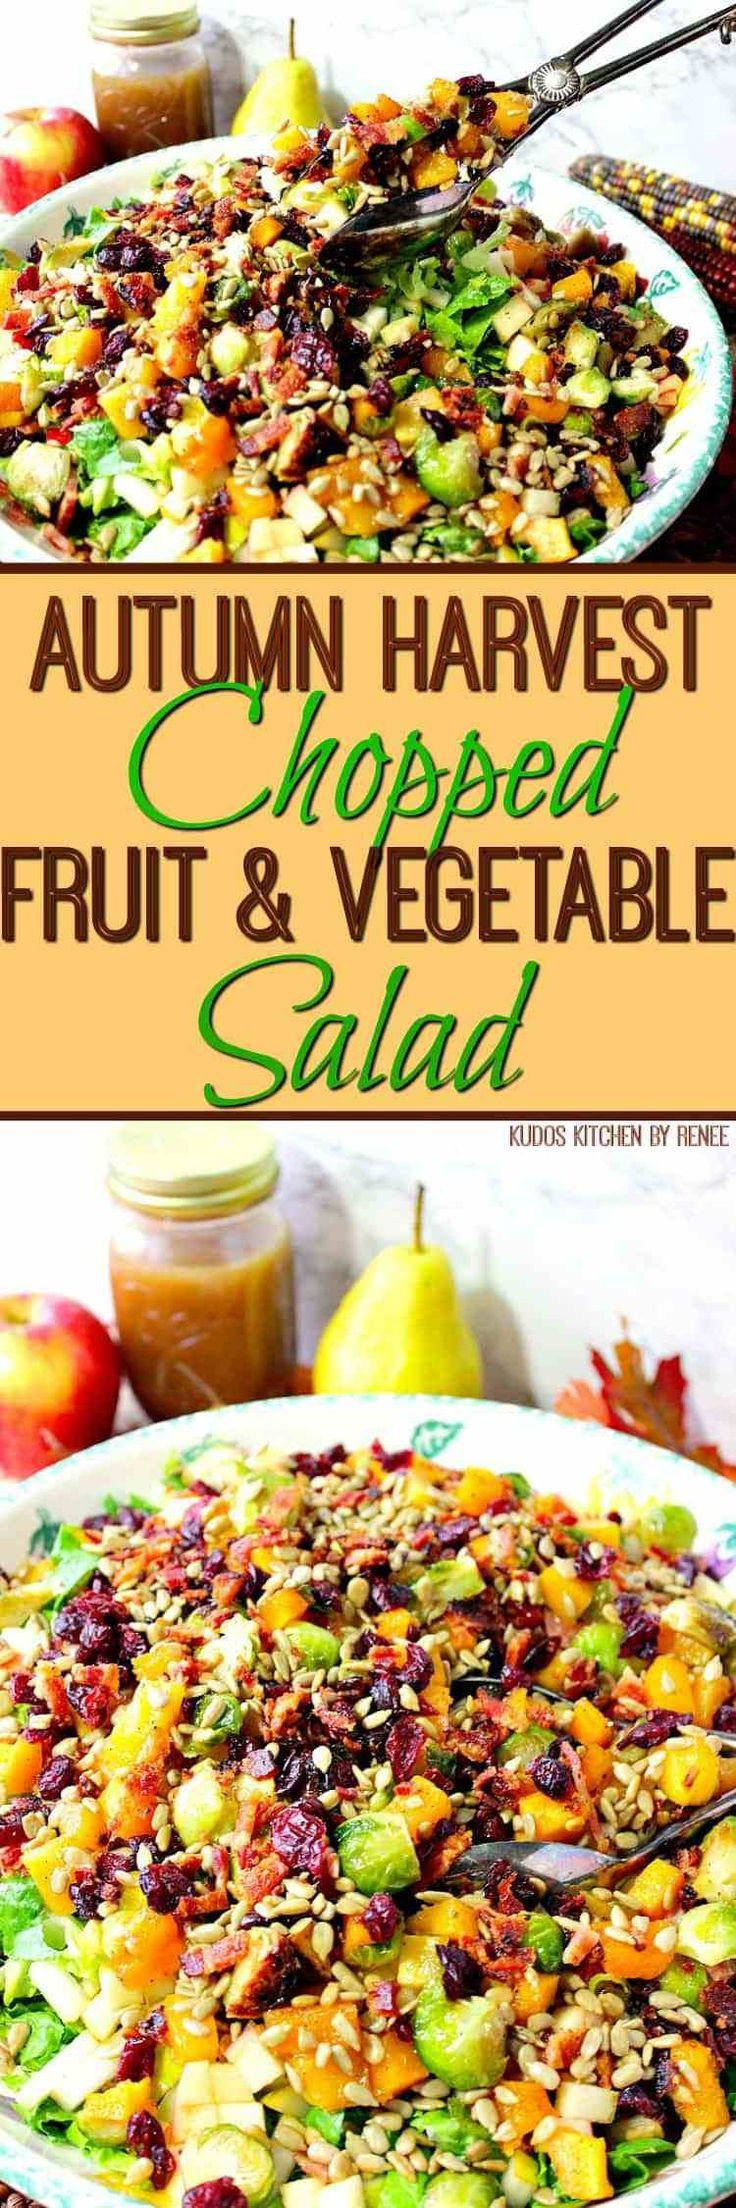 This Autumn Harvest Chopped Fruit & Vegetable Salad has all the colors and flavors of fall, and can easily grace the Thanksgiving table. - Kudos Kitchen by Renee